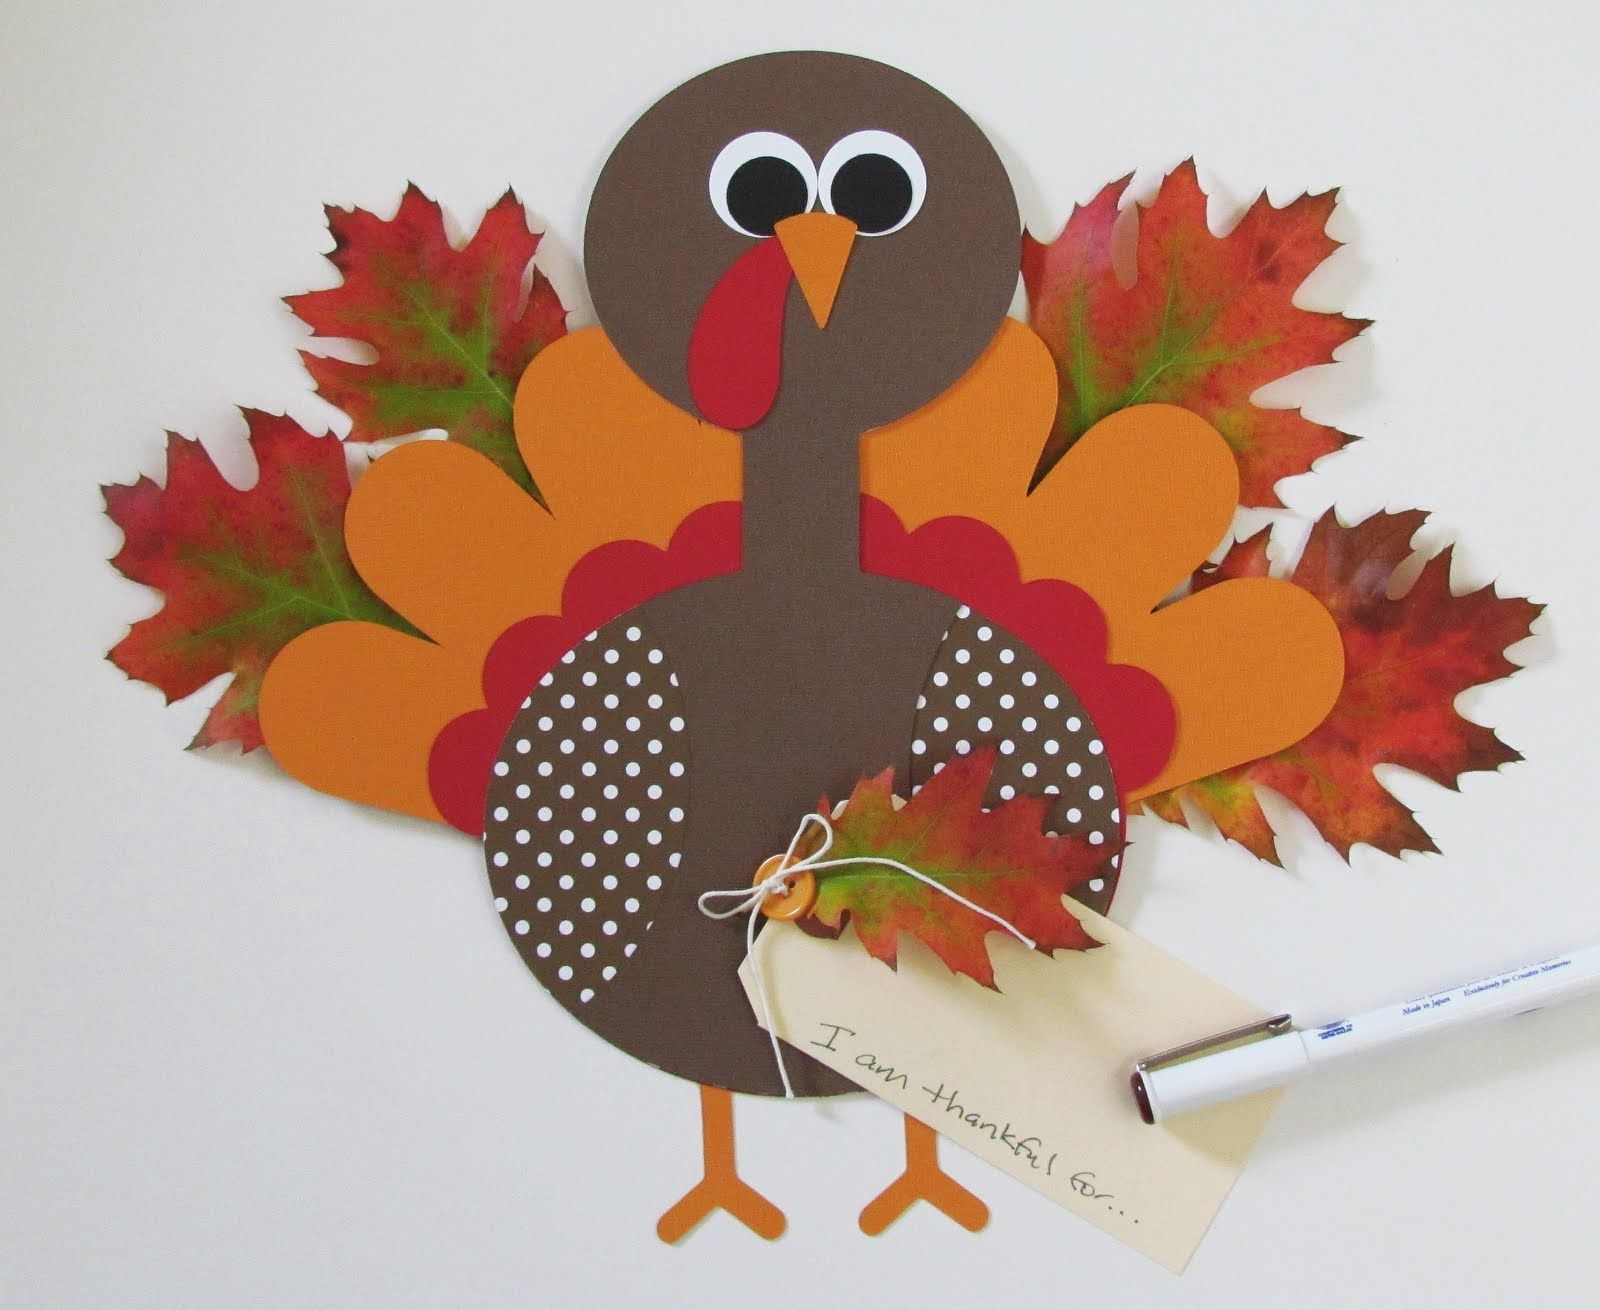 pictures of turkeys for kids sharon langford designs 2 day thanksgiving blog hop - Pictures Of Turkeys For Kids 2